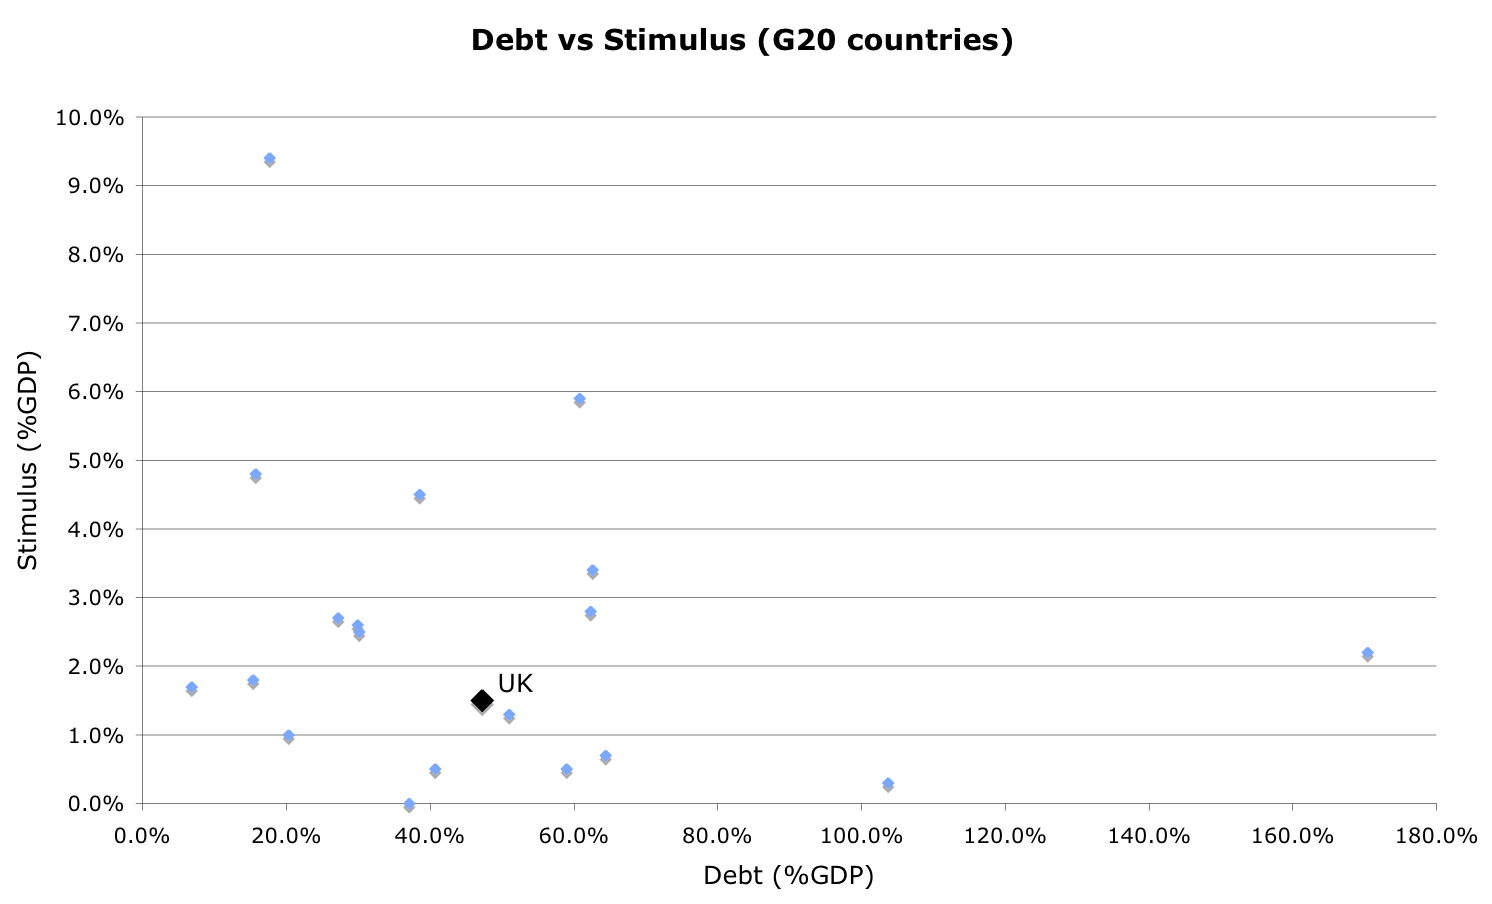 debt-stimulus-g20-countries